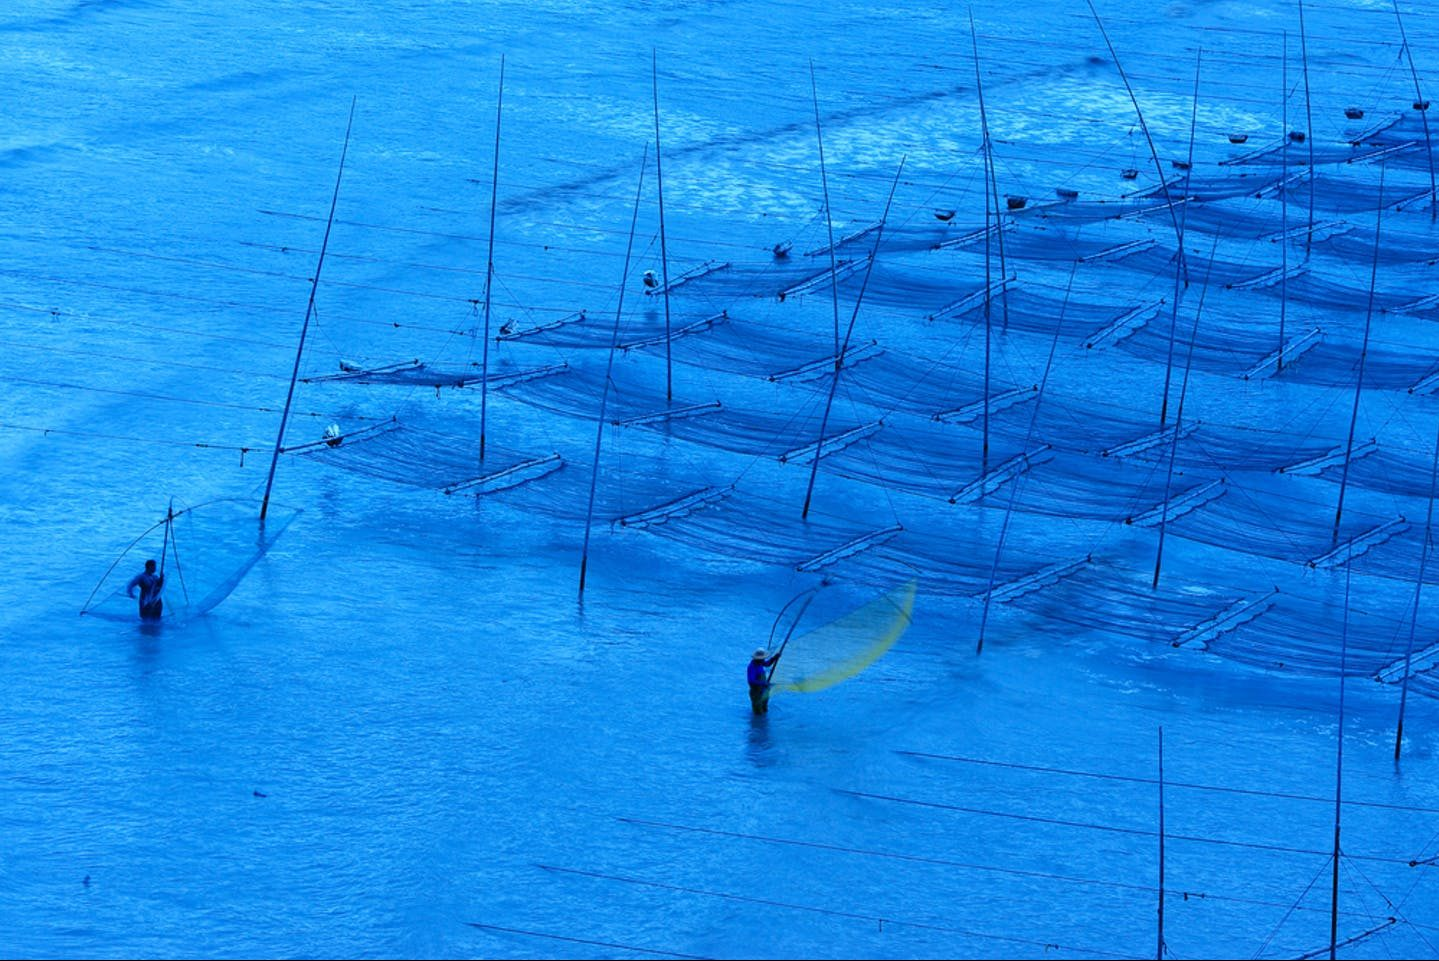 Attracting Investment in Aquaculture Sector